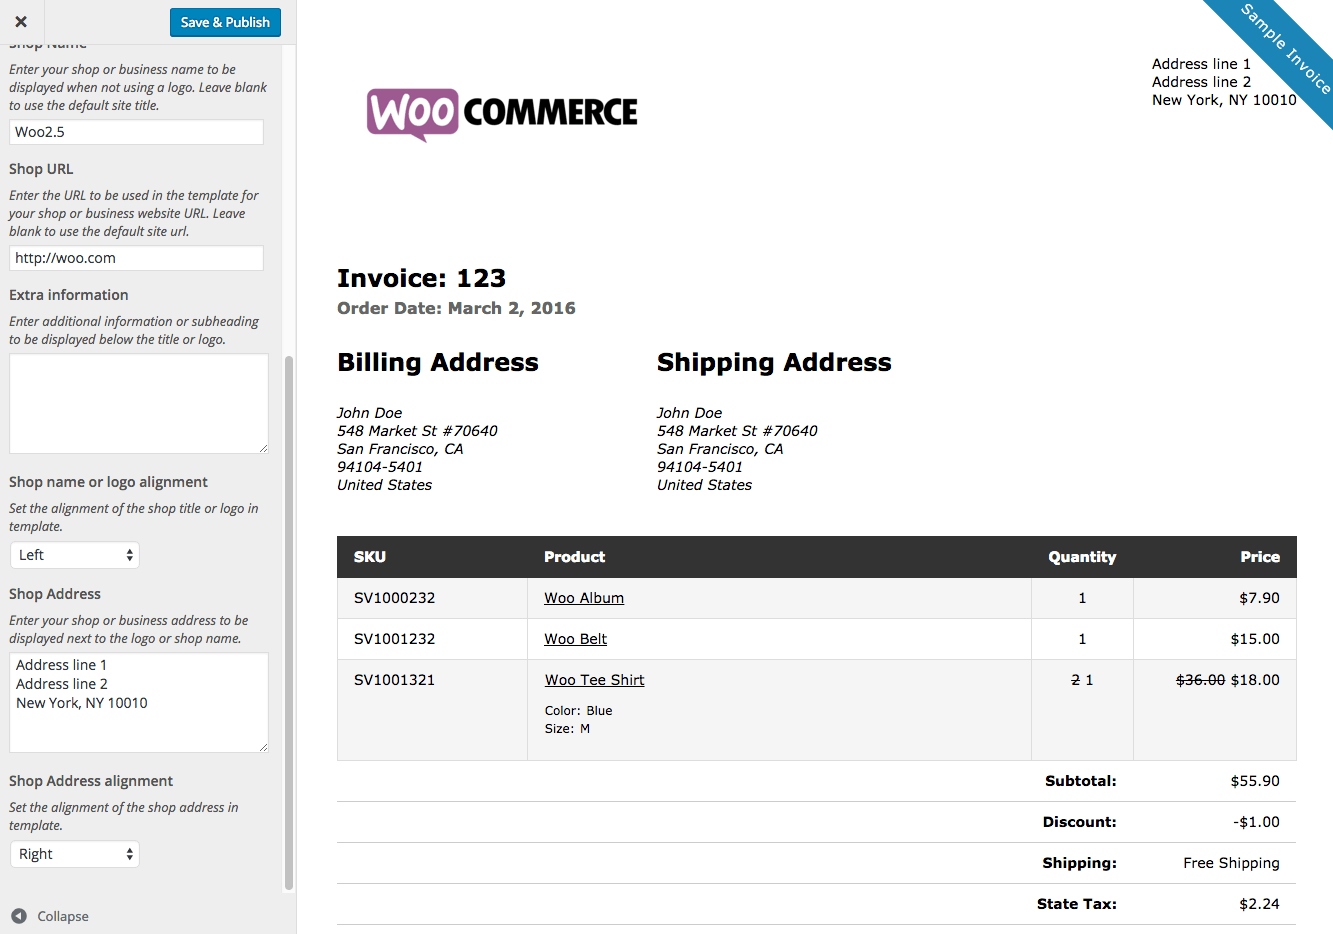 Carsforlessus  Marvelous Woocommerce Print Invoices Amp Packing Lists  Woocommerce Docs With Licious Woocommerce Print Invoices  Packing Lists Customizer With Enchanting Wawf Invoice Also Business Invoice Finance In Addition Simple Invoicing Software And Ariba Invoicing As Well As Carpet Cleaning Invoice Template Additionally Invoice Discrepancy From Docswoocommercecom With Carsforlessus  Licious Woocommerce Print Invoices Amp Packing Lists  Woocommerce Docs With Enchanting Woocommerce Print Invoices  Packing Lists Customizer And Marvelous Wawf Invoice Also Business Invoice Finance In Addition Simple Invoicing Software From Docswoocommercecom